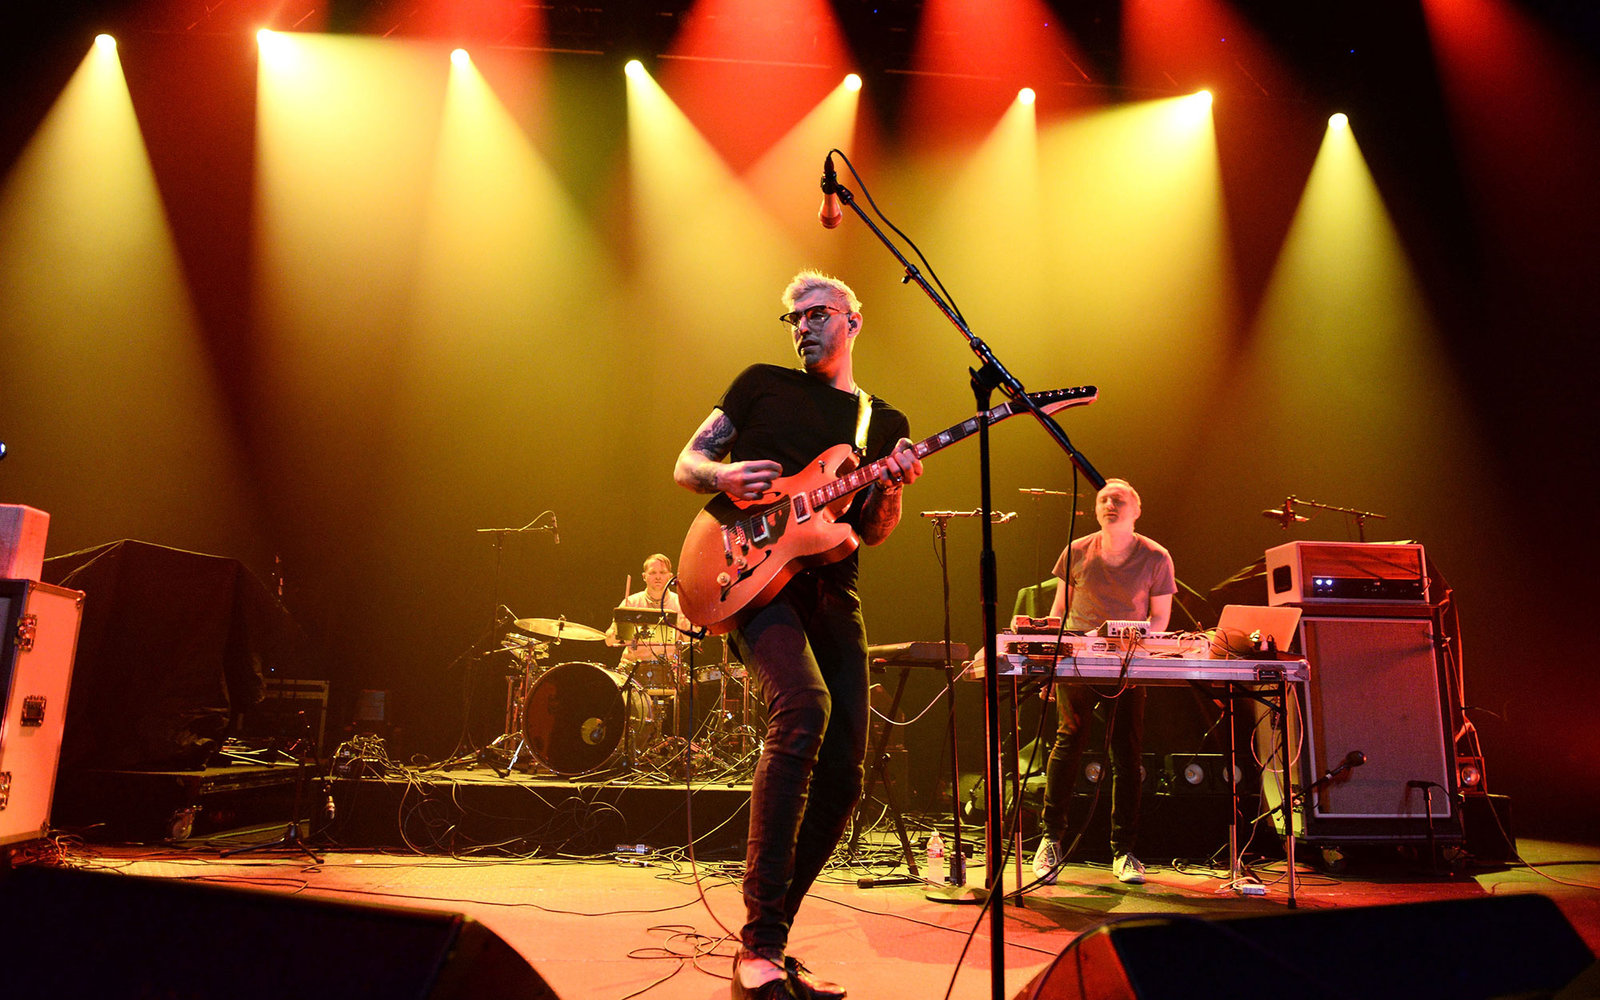 AUSTIN, TX - MARCH 19:  Singer/guitarist Brandon Rush (center) of Priory  performs onstage at the 101x showcase in the Moody Theater at Austin City Limits on March 19, 2015 in Austin, Texas.  (Photo by Scott Dudelson/Getty Images)